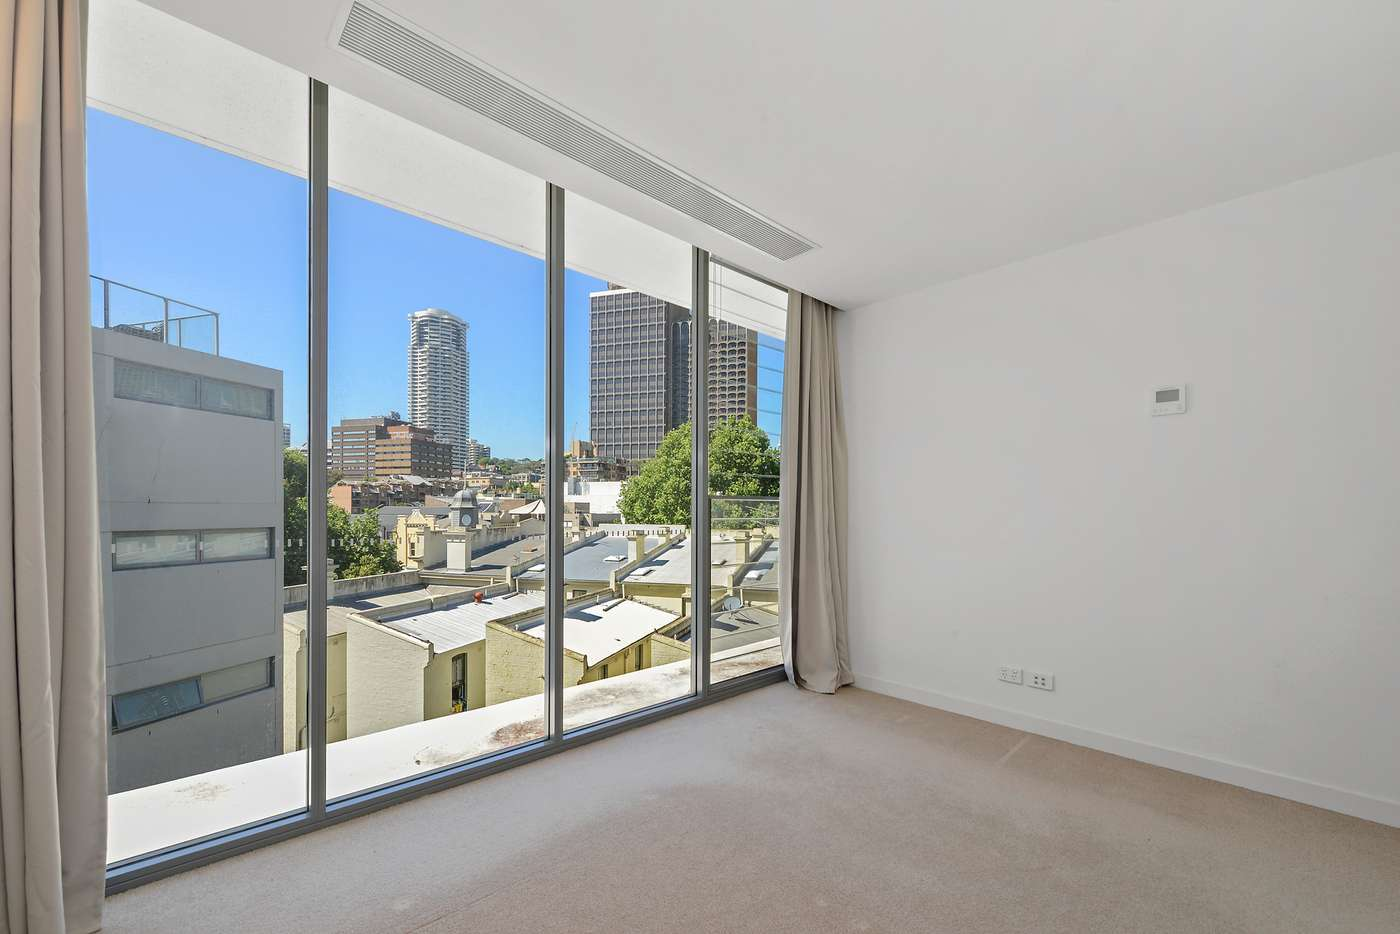 Sixth view of Homely apartment listing, 74/68 Sir John Young Crescent, Woolloomooloo NSW 2011